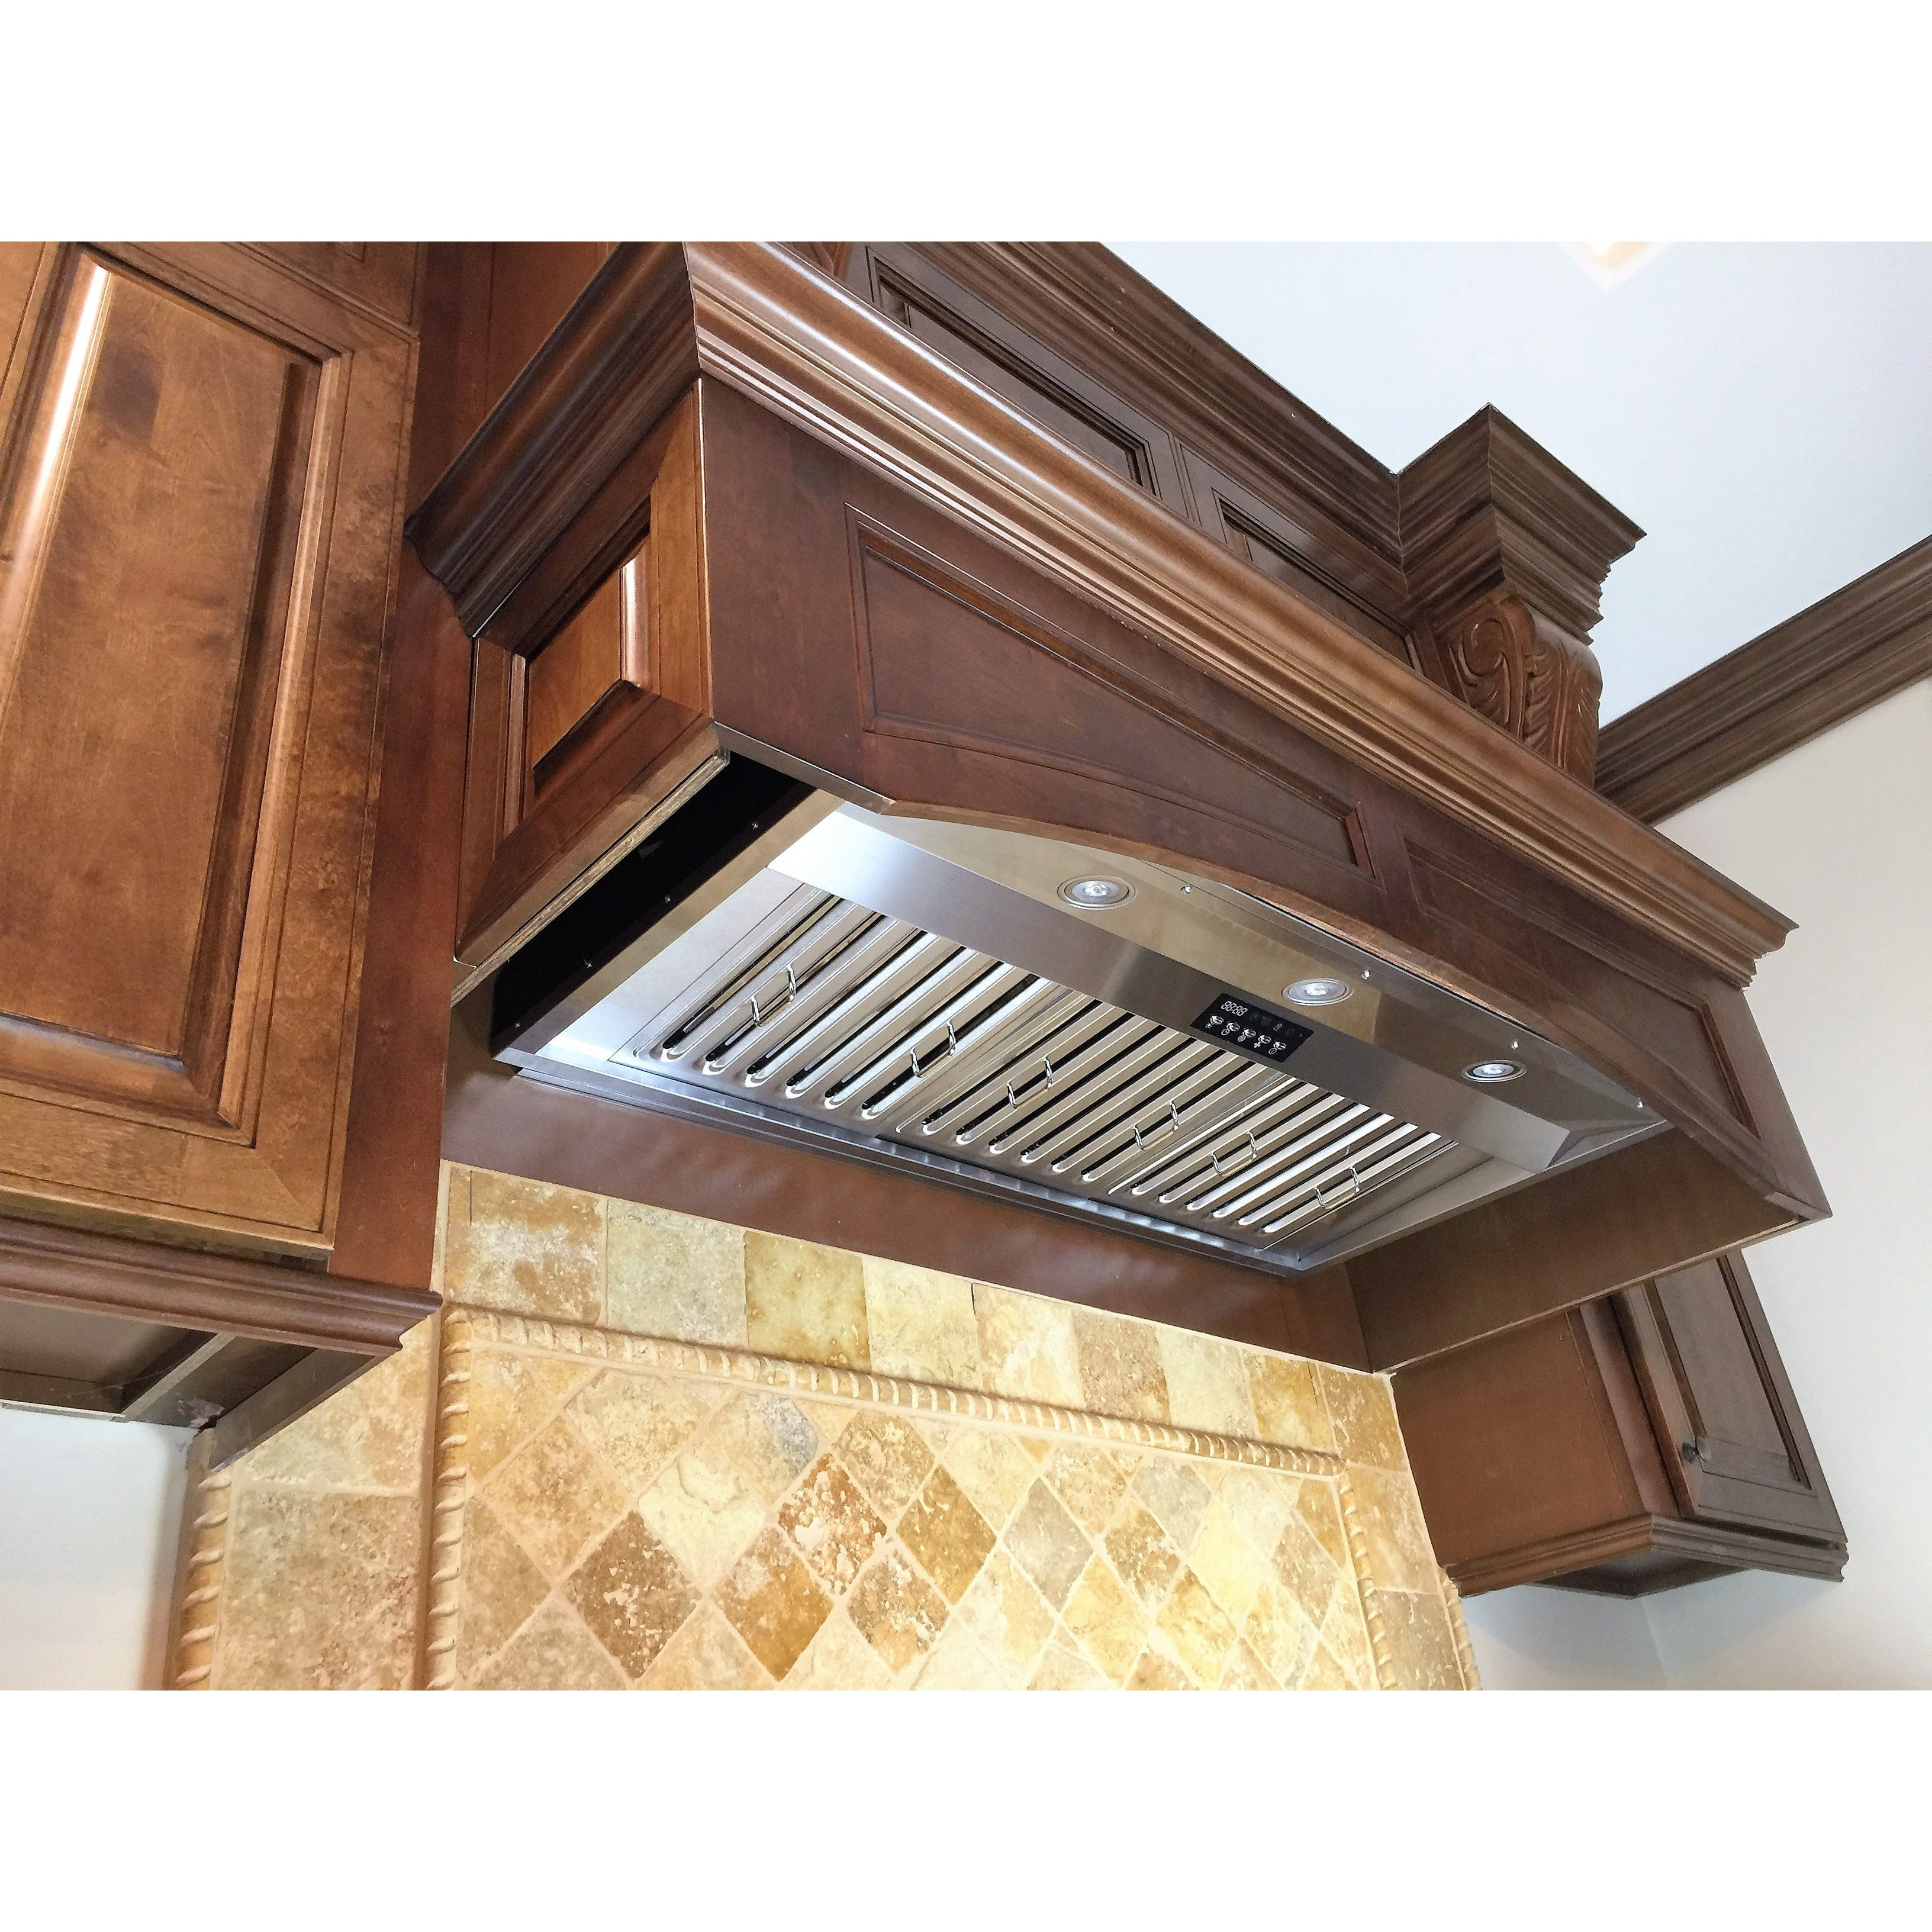 kitchenaid undert hood ge under kitchen range vent hoods of concept full cabinet cosmo reviews photo cfm size insert vented unusual